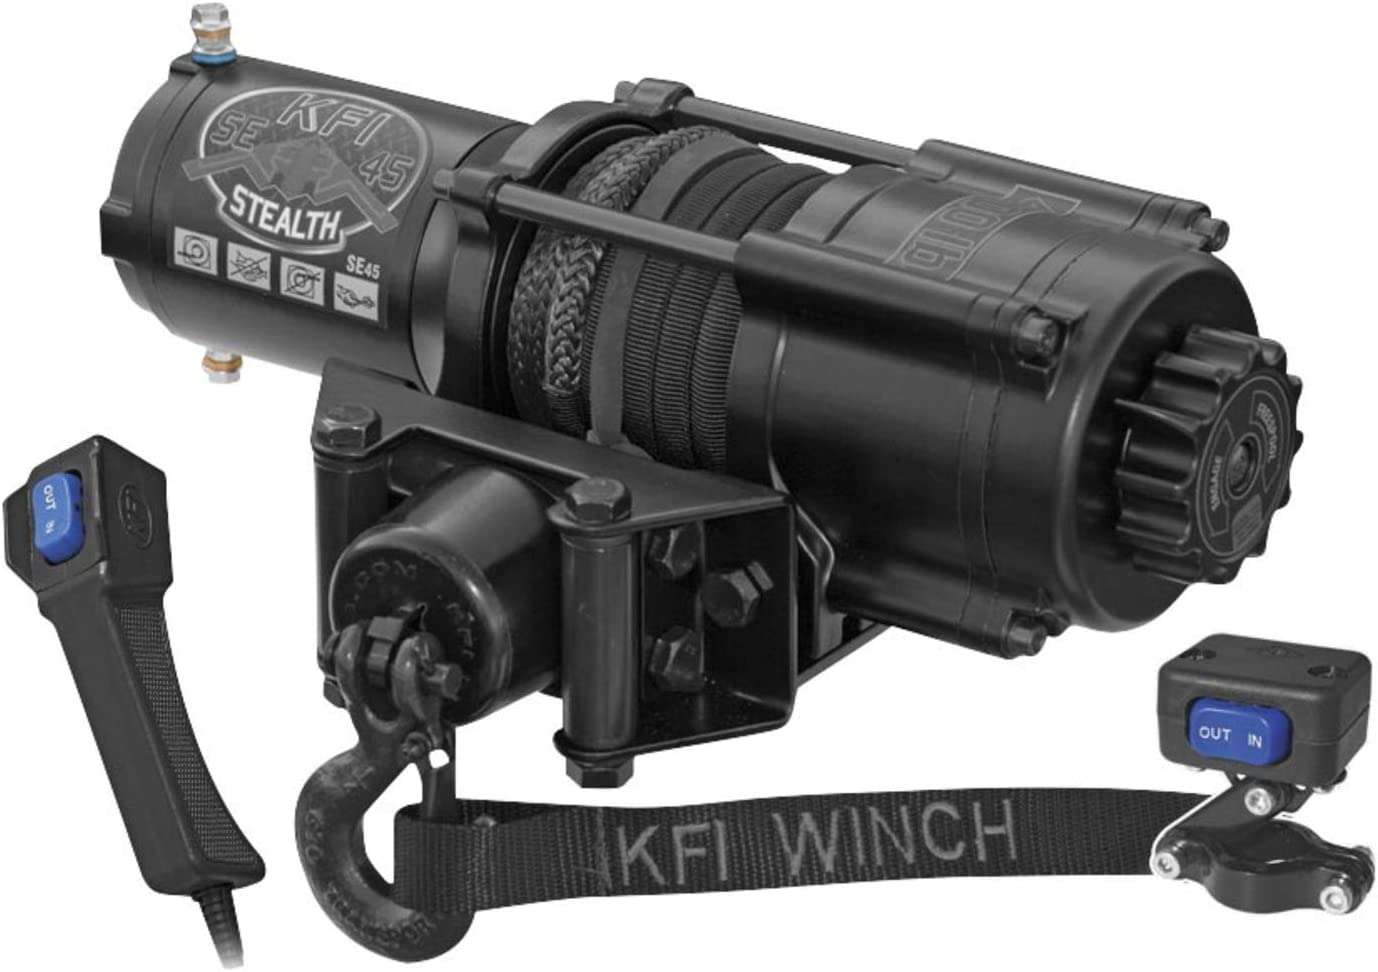 KFI Products Winch Mounts for KFI U4500 and SE45 100870